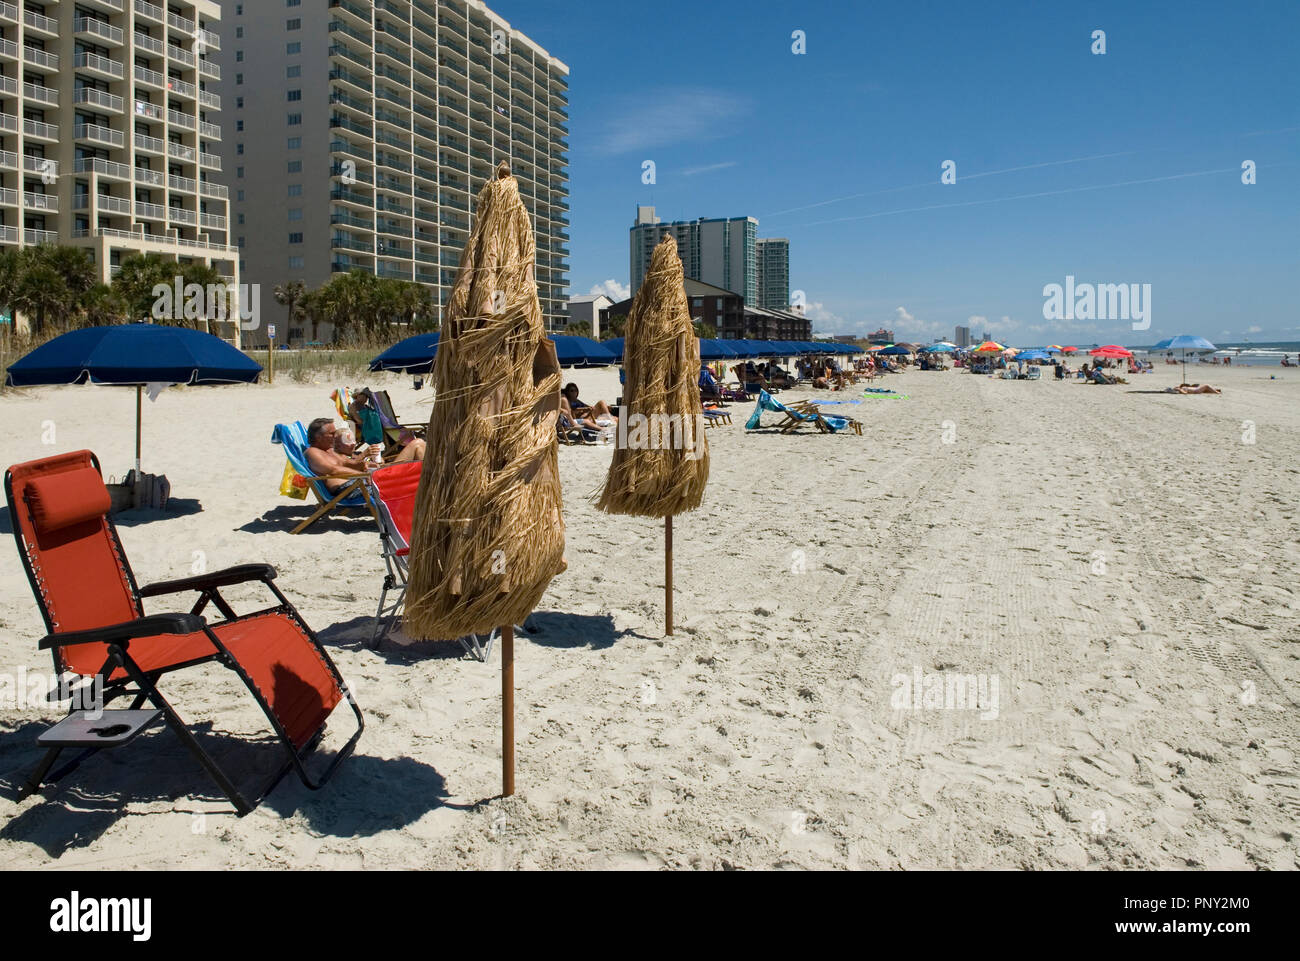 Umbrella and blue chair on beach at North Myrtle Beach South Carolina USA - Stock Image